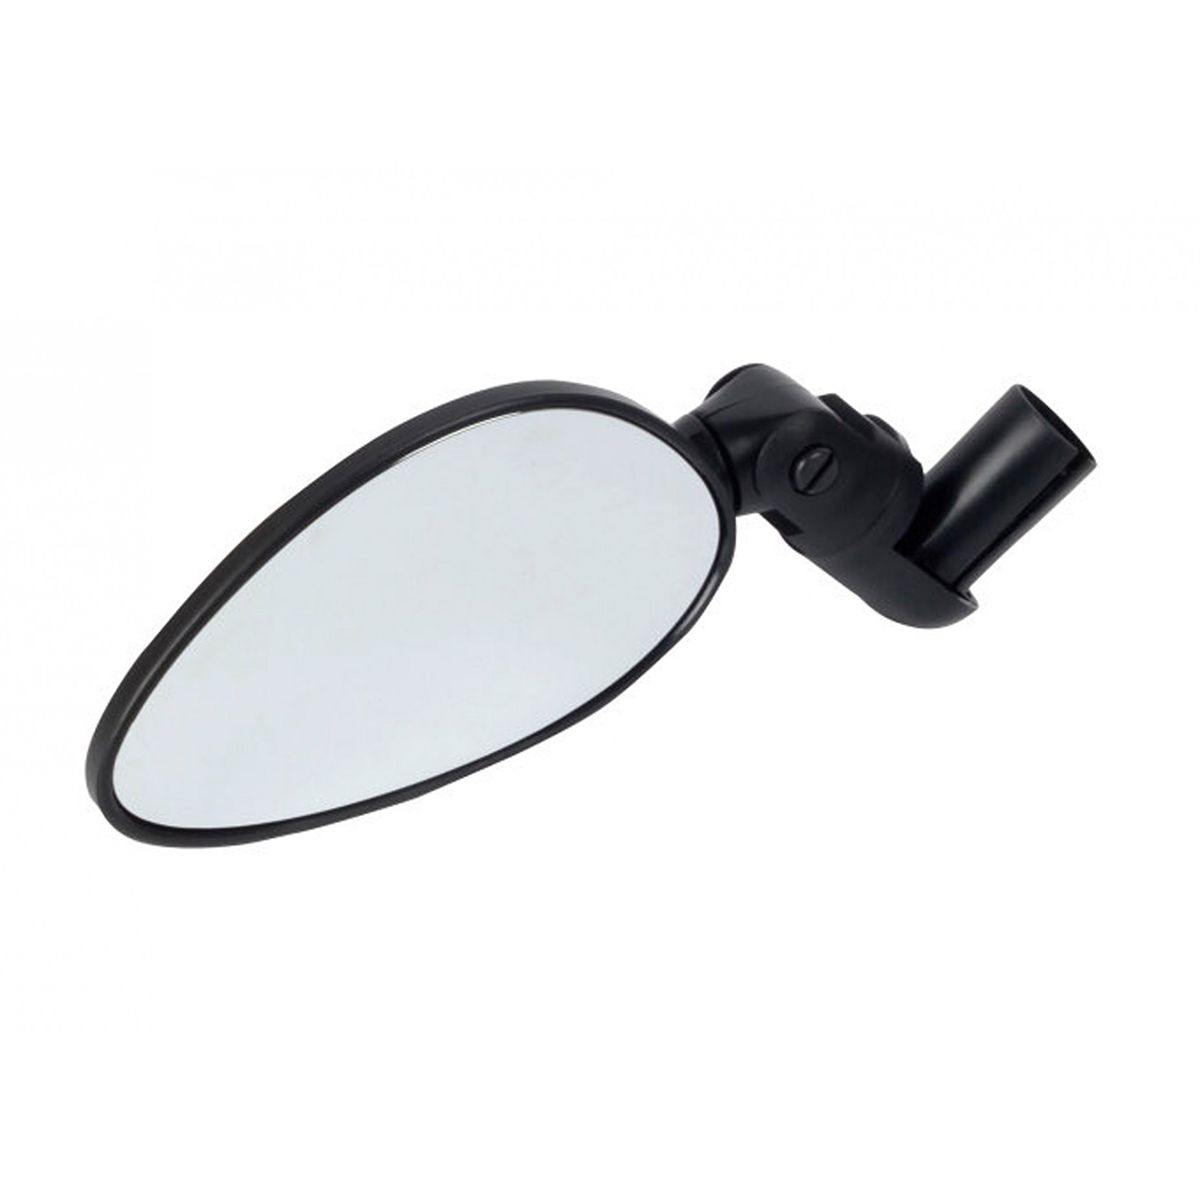 Zéfal Cyclop rear view mirror | Misc. Handlebars and Stems